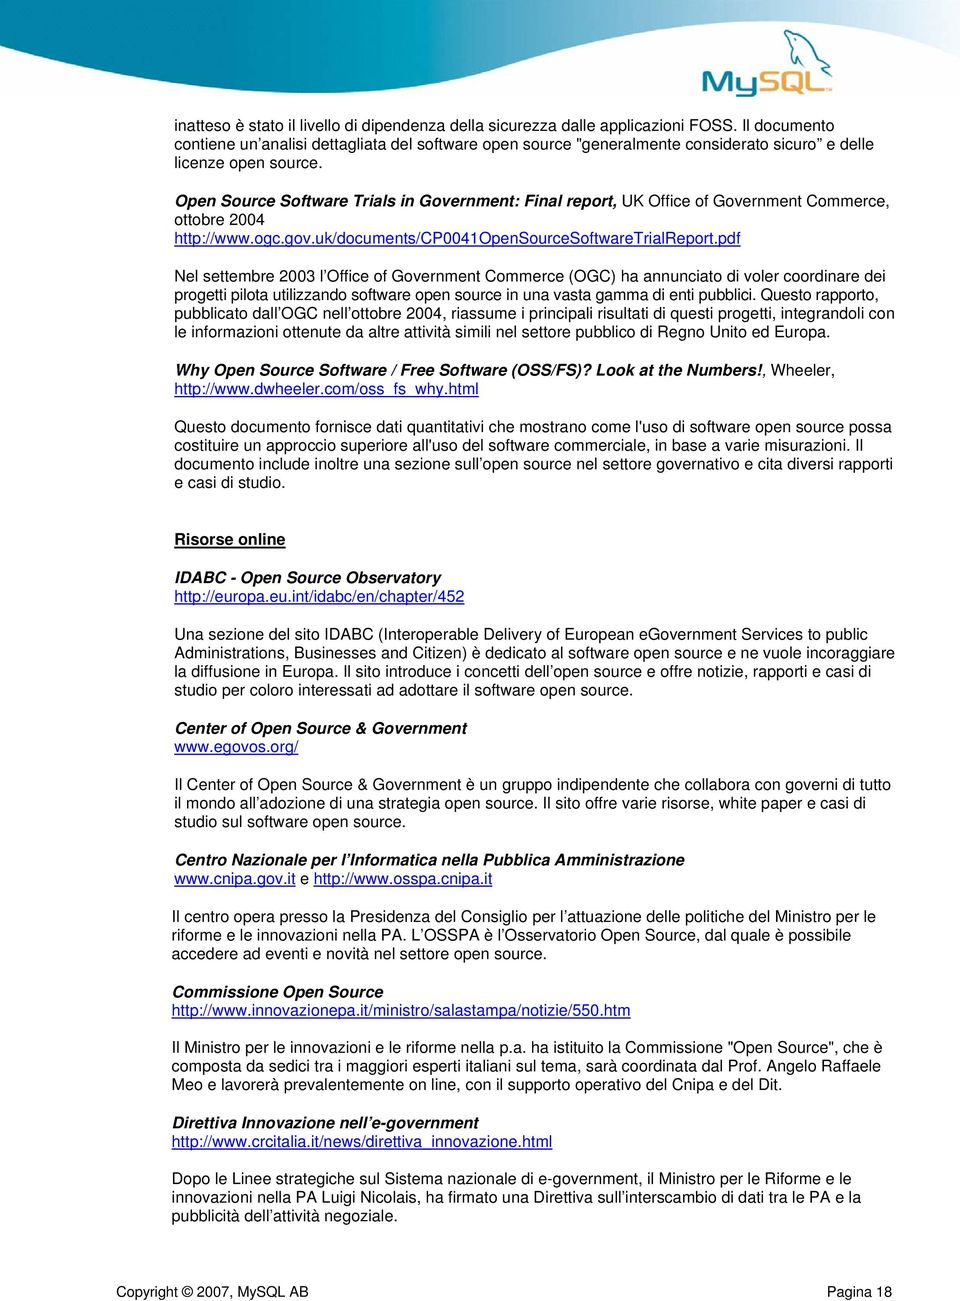 Open Source Software Trials in Government: Final report, UK Office of Government Commerce, ottobre 2004 http://www.ogc.gov.uk/documents/cp0041opensourcesoftwaretrialreport.